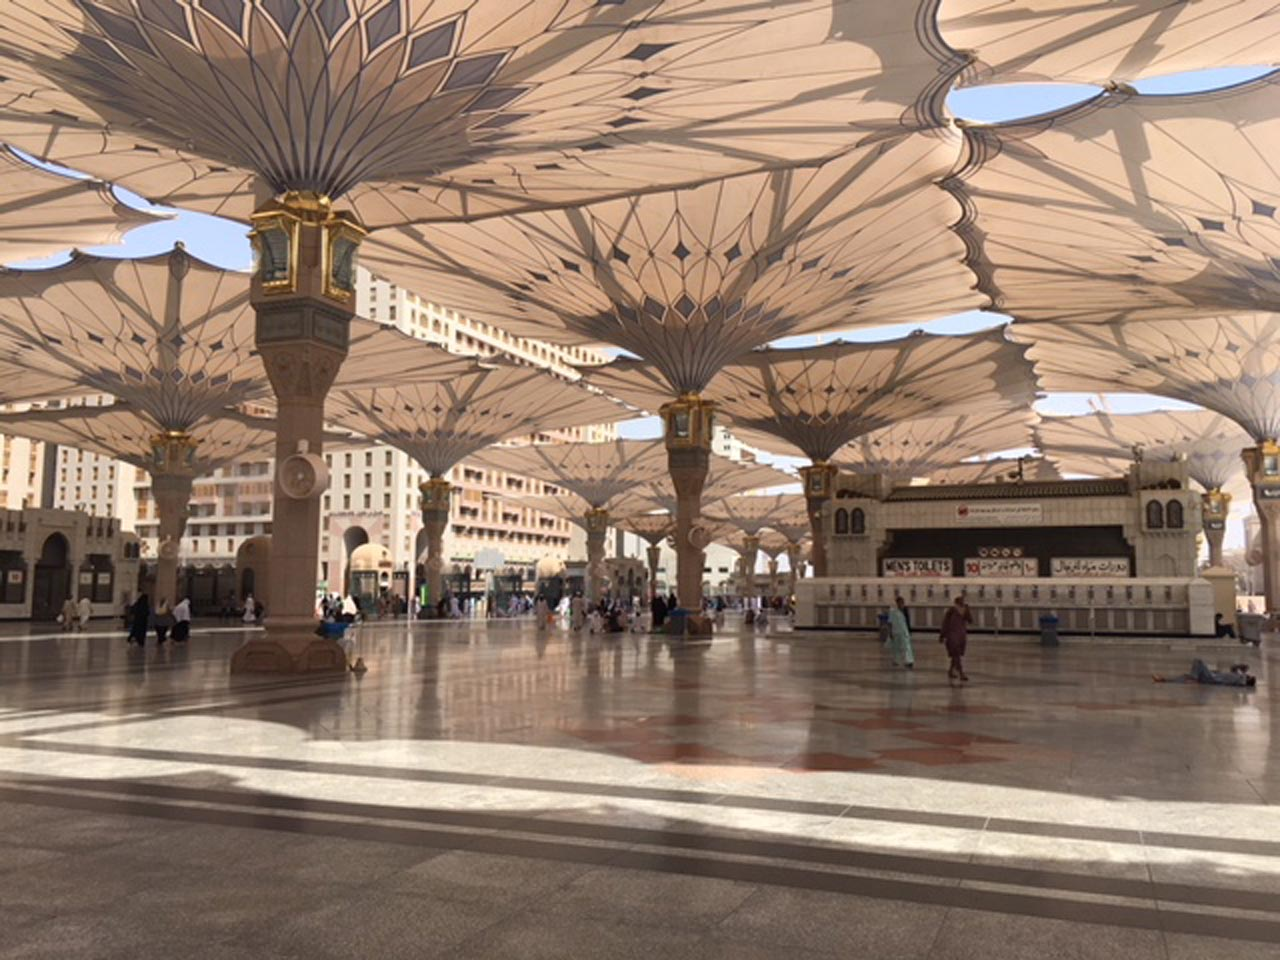 The outside of the Masjid-e-Nabwi as all the Umbrellas are in open position